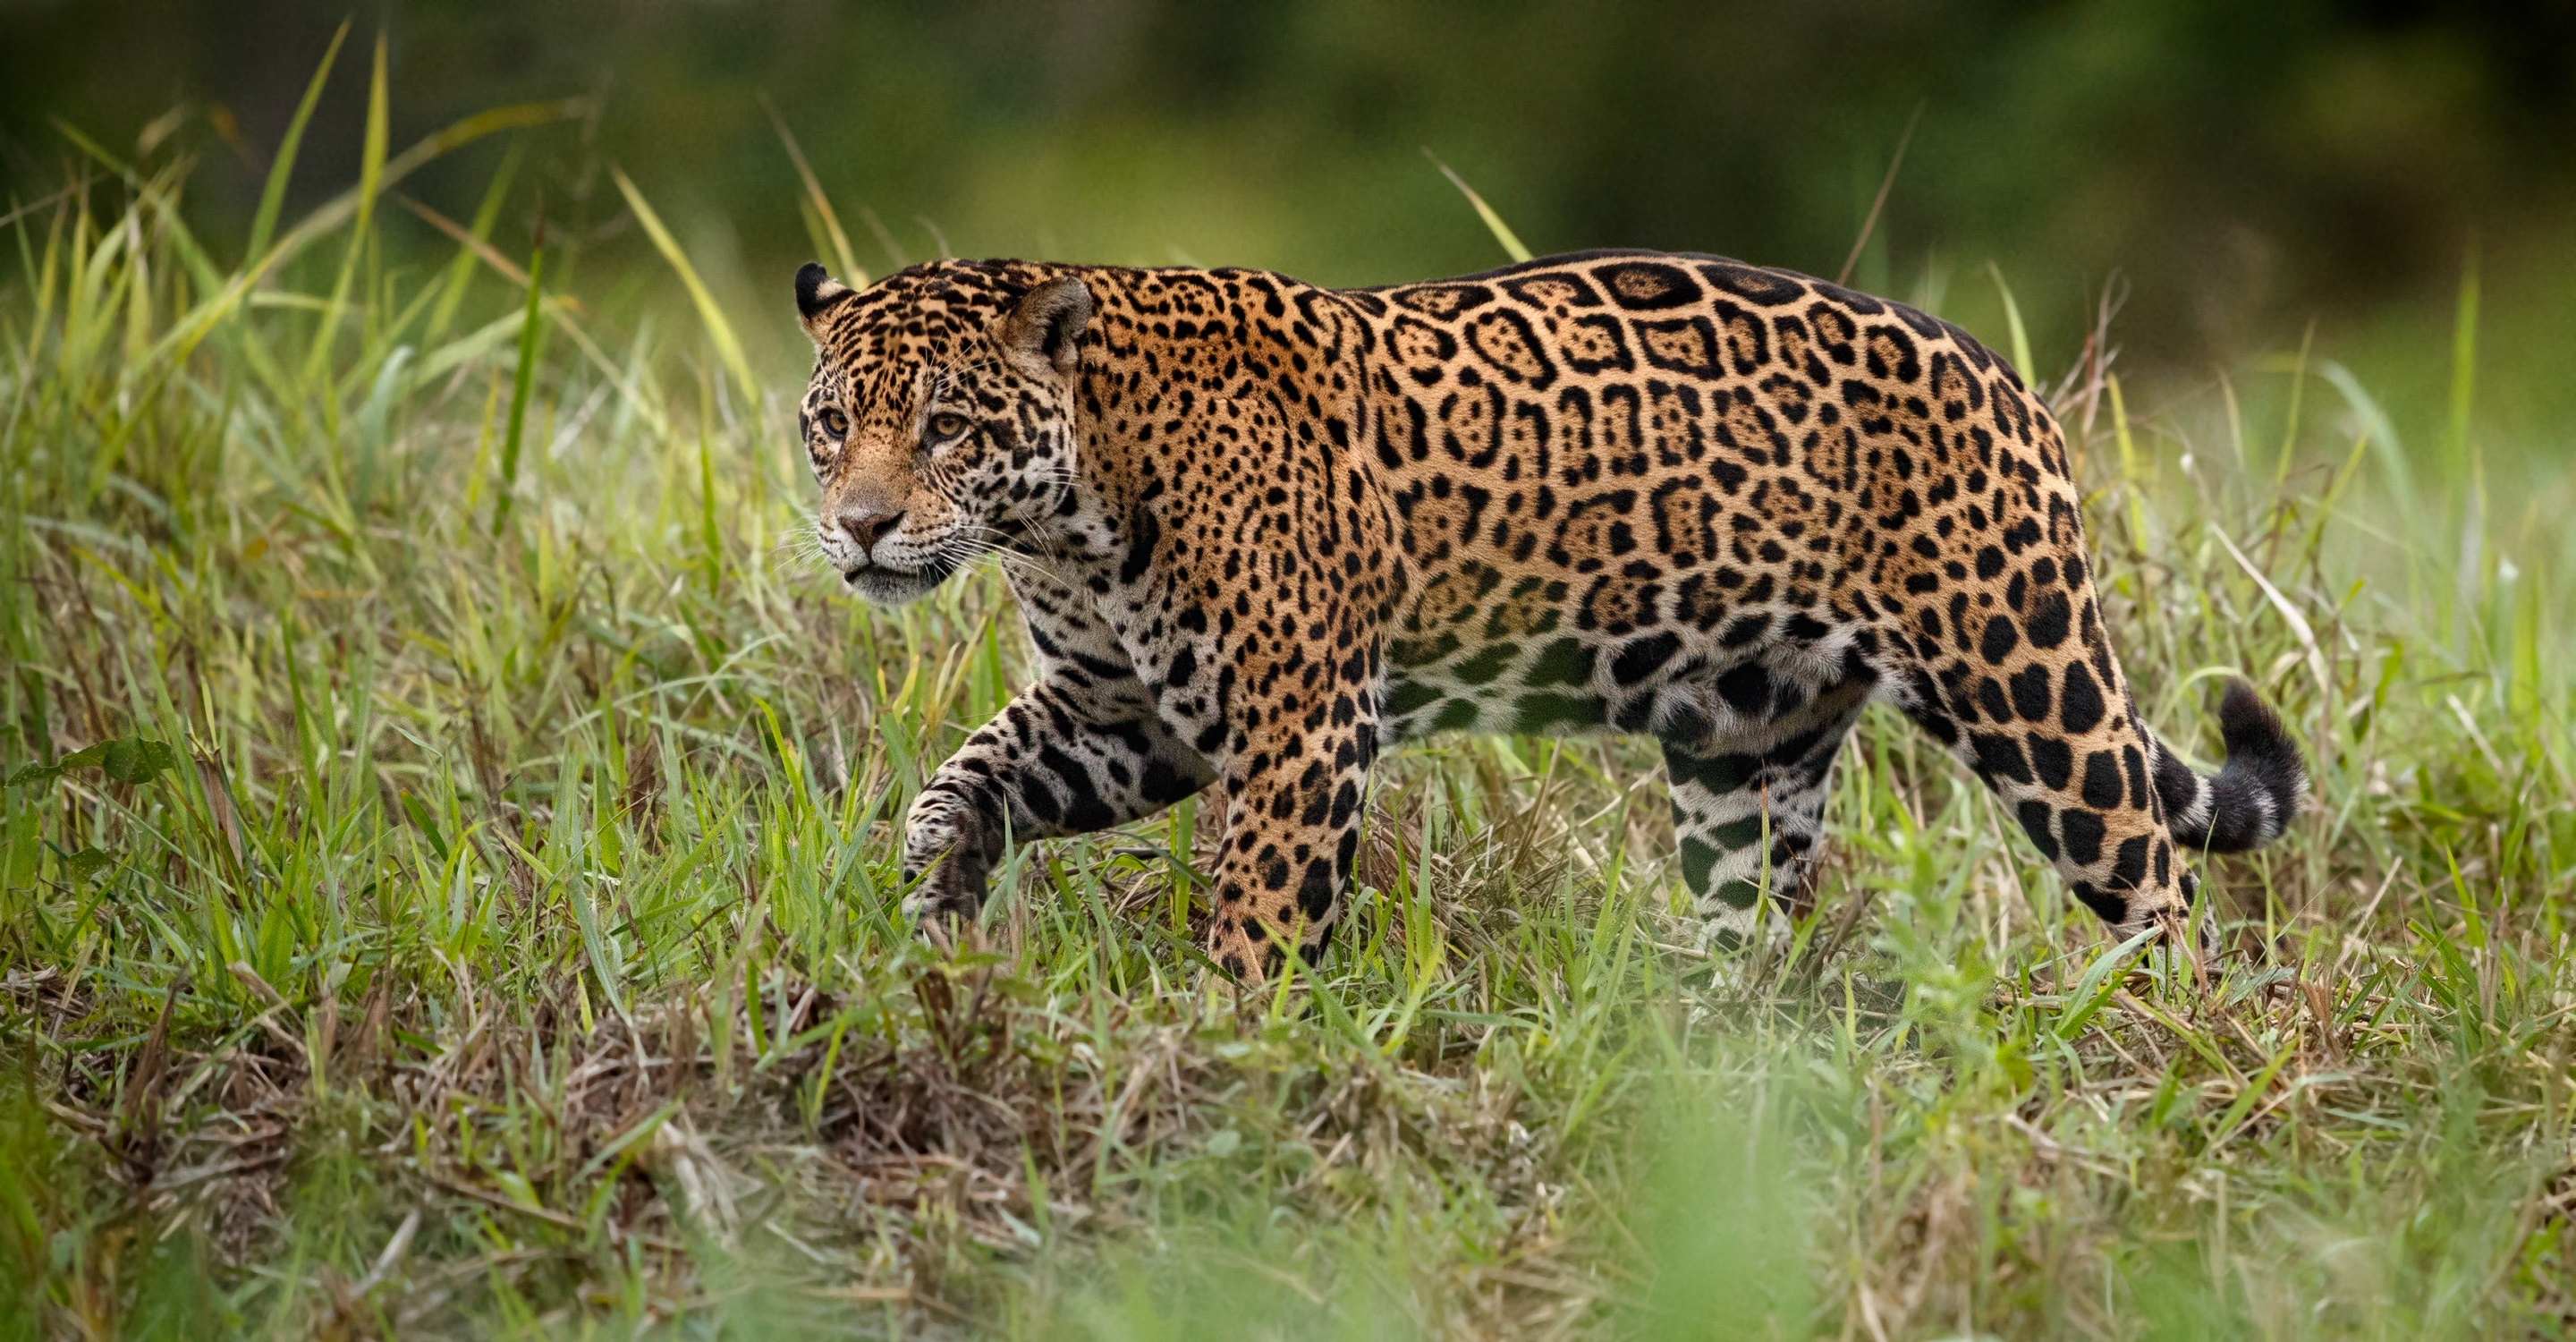 Jaguars & Wildlife of Brazil